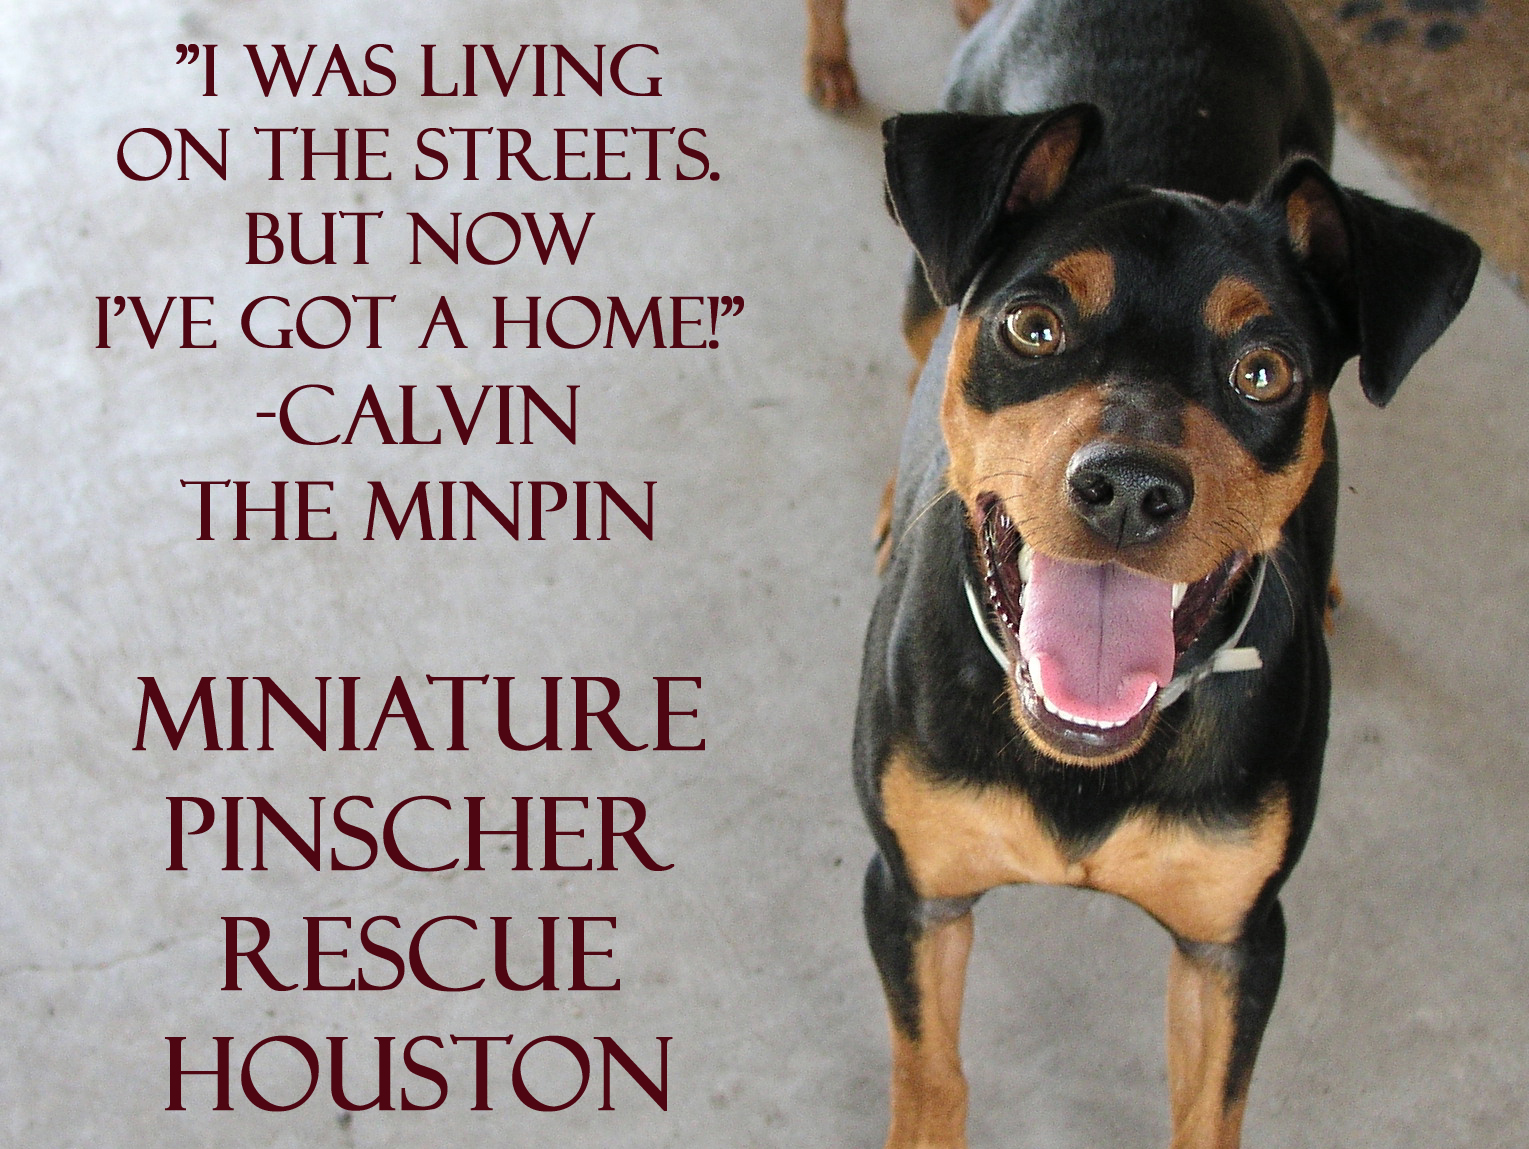 Miniature Pinscher Rescue Houston